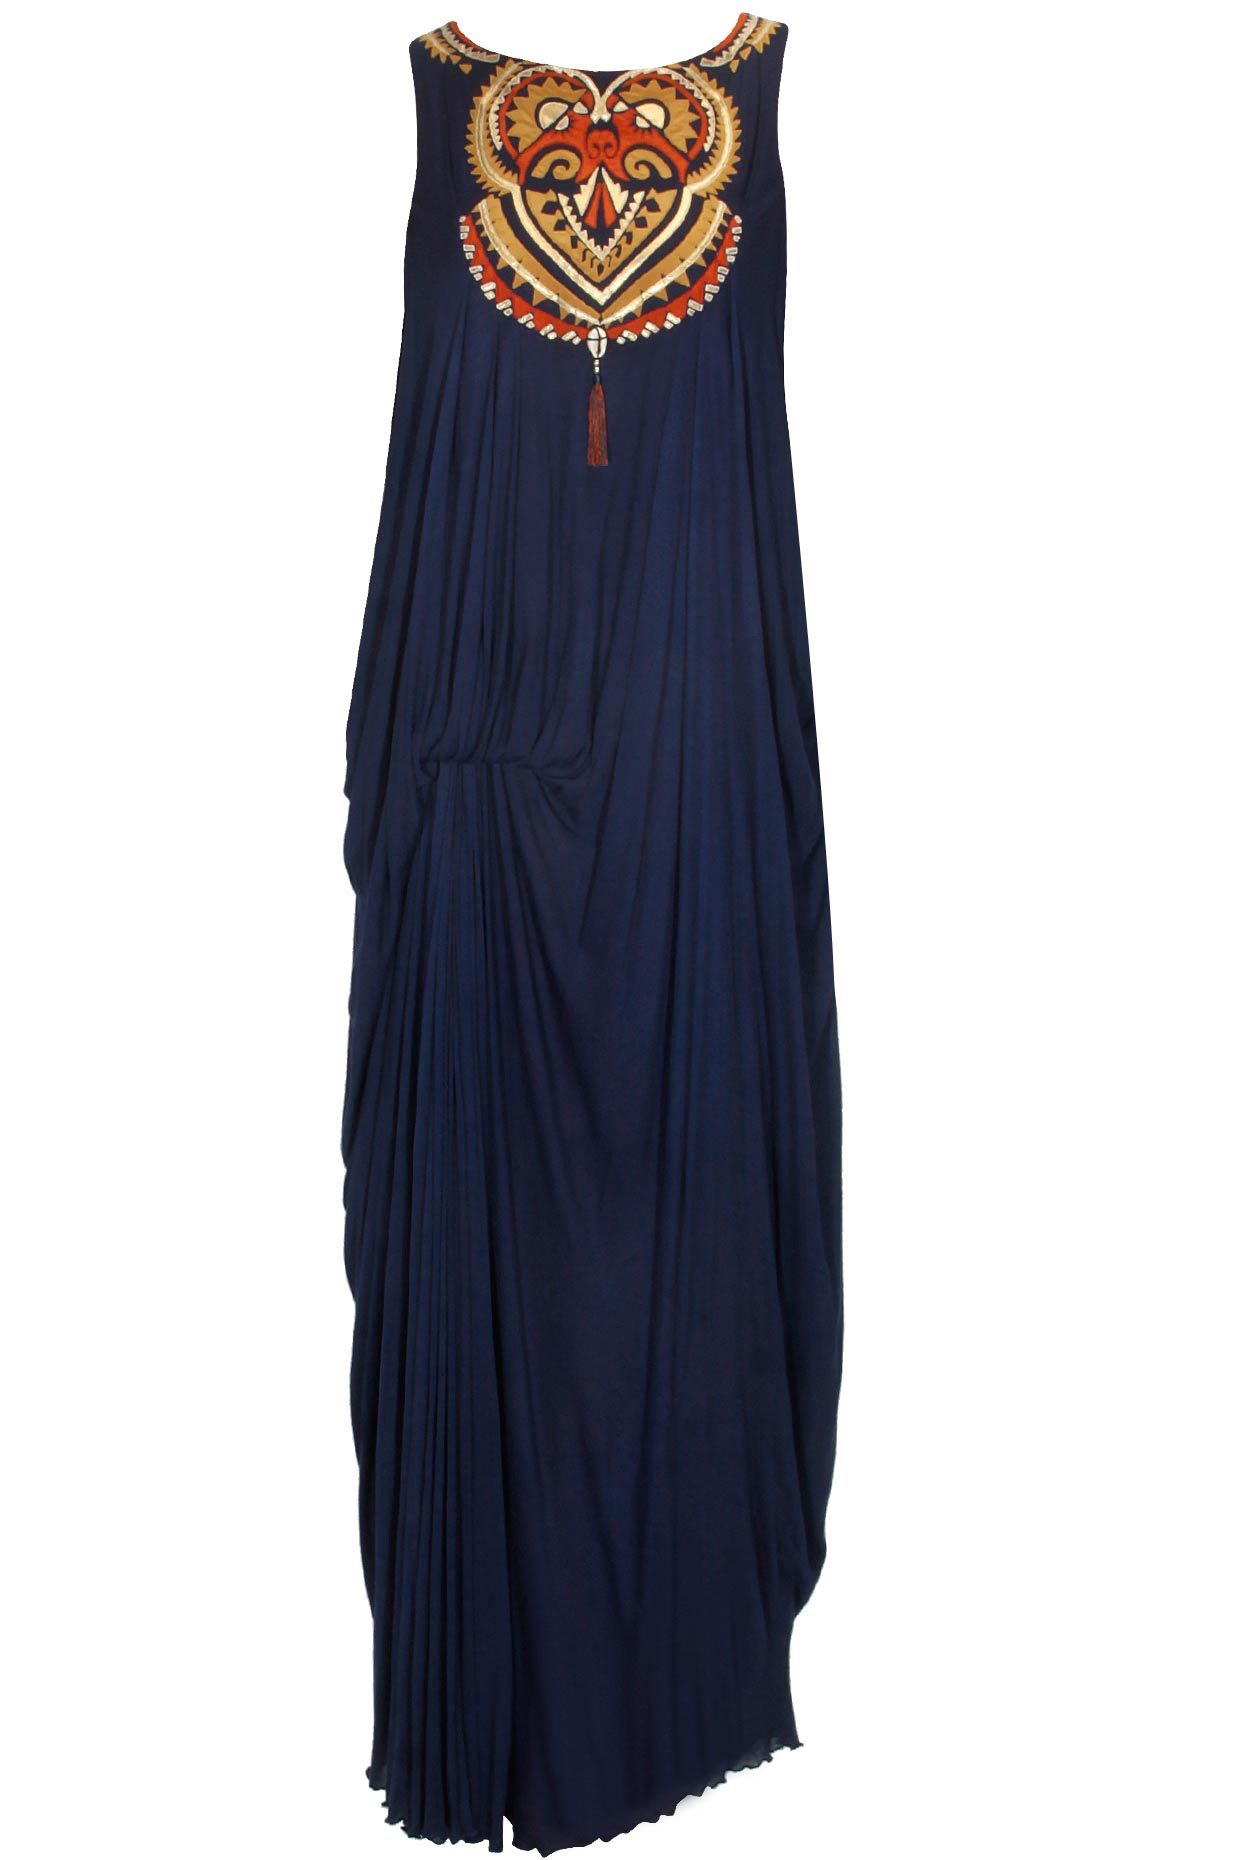 Navy blue maori magic vintage drape available only at Pernia's Pop Up Shop.#perniaspopupshop #shopnow #resortwear #autumnwinter #designer #clothing #newcollection #happyshopping #maliniramani